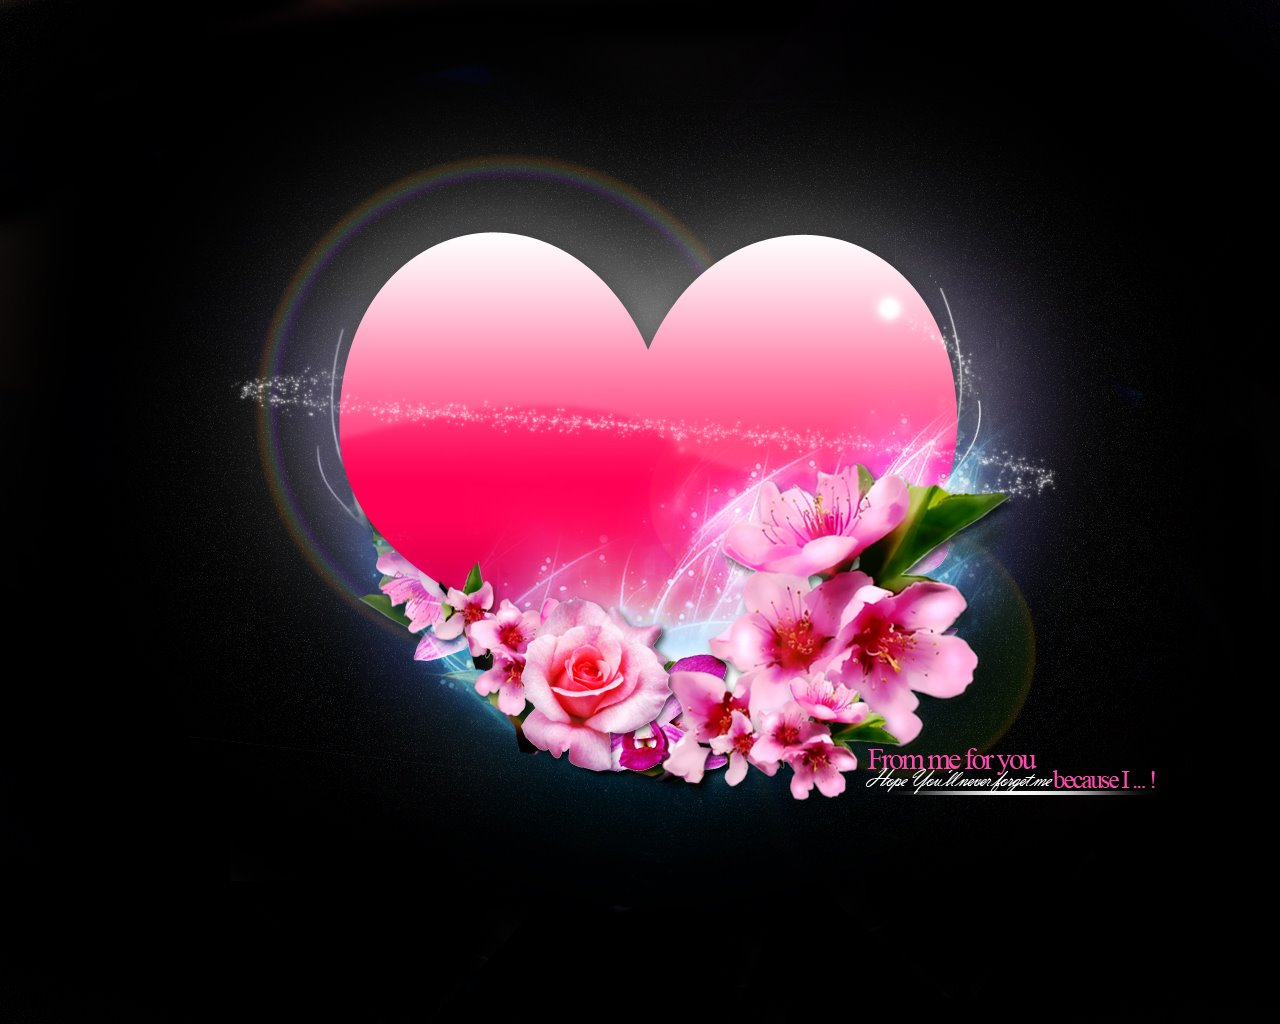 Heart & flowers 365.34 Kb